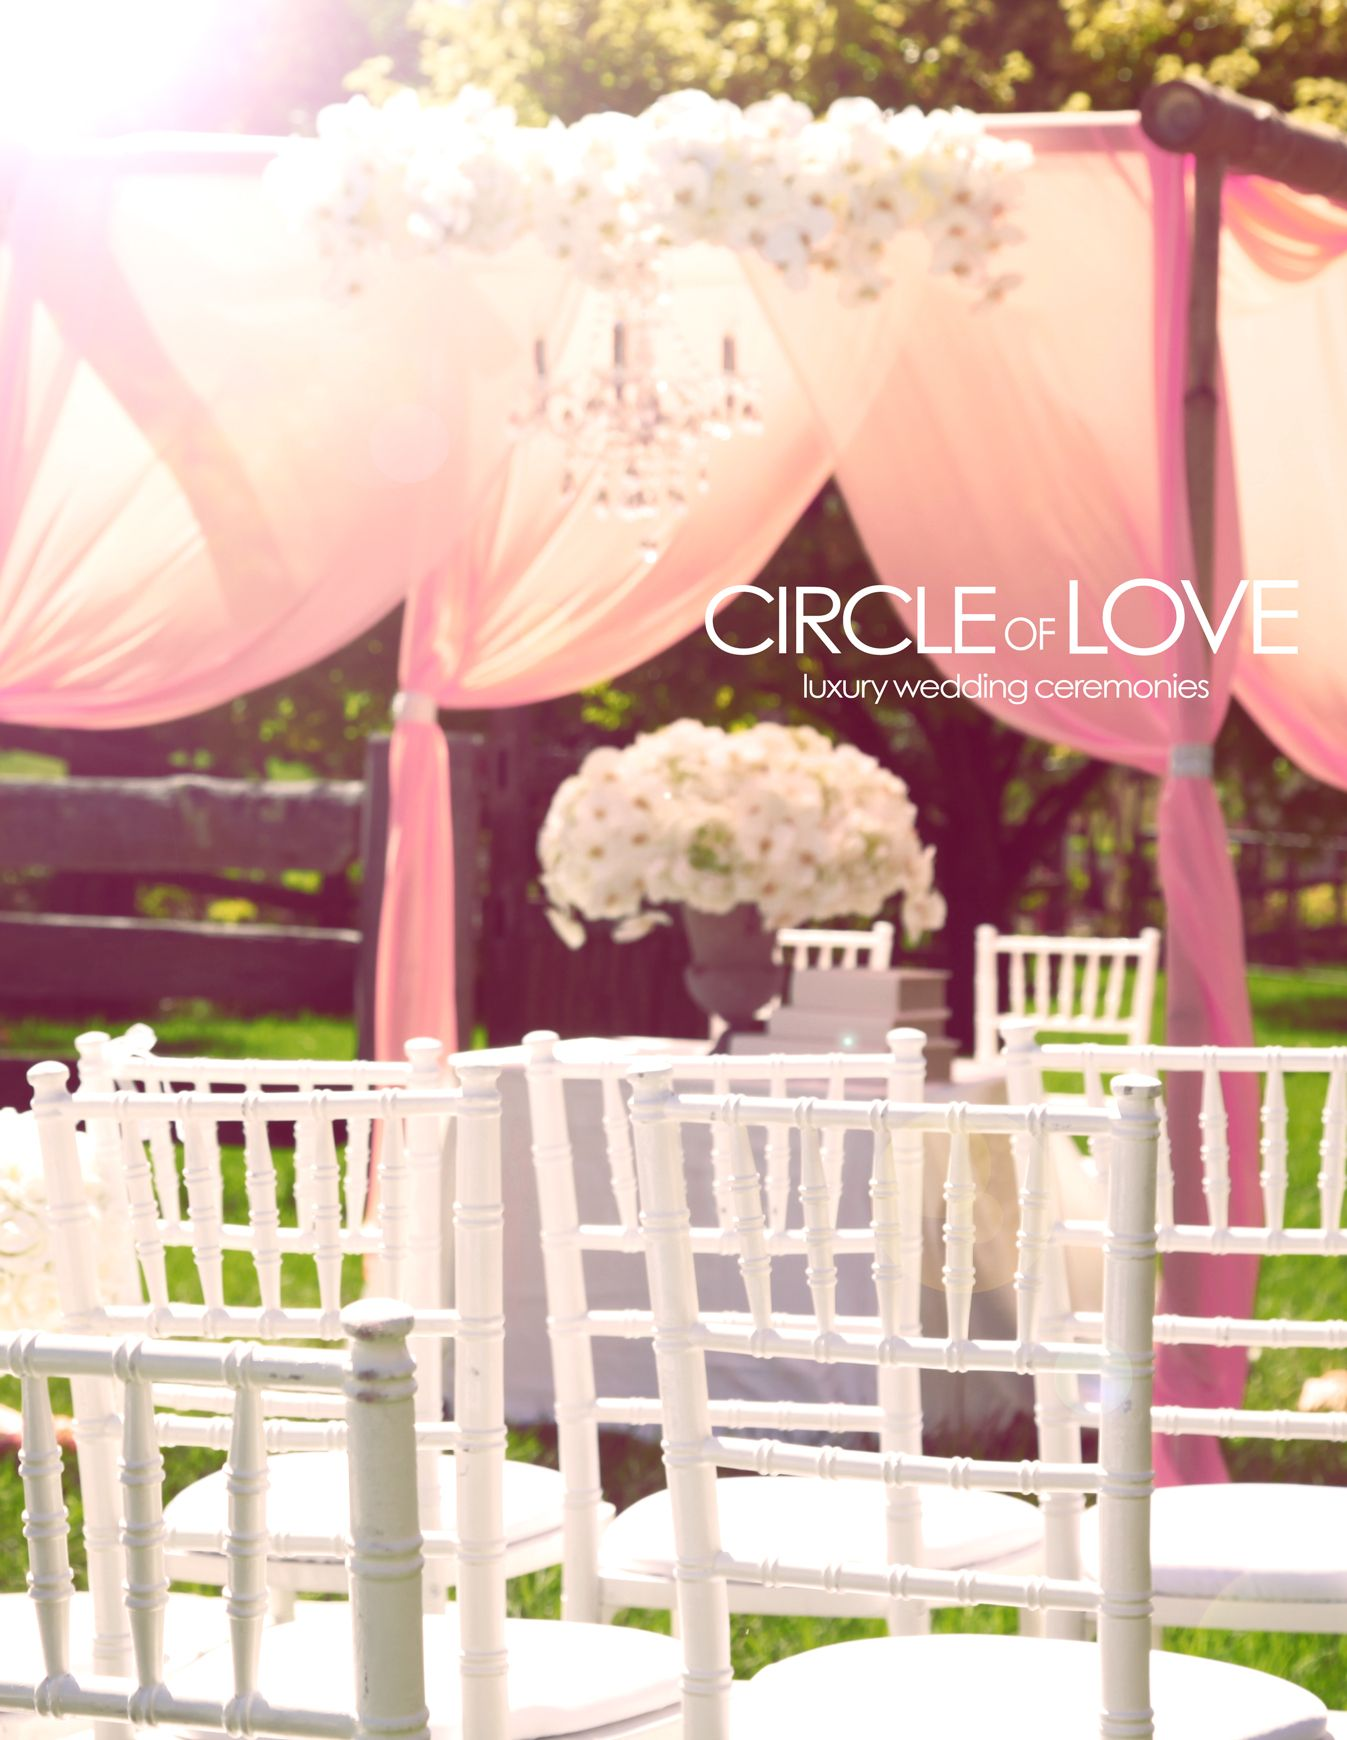 Bamboo canopy weddings in sydney circleofloveweddings find entertainment amusement businesses and franchises for sale in brisbane qld seek business offers you the opportunity of owning managing your own junglespirit Image collections